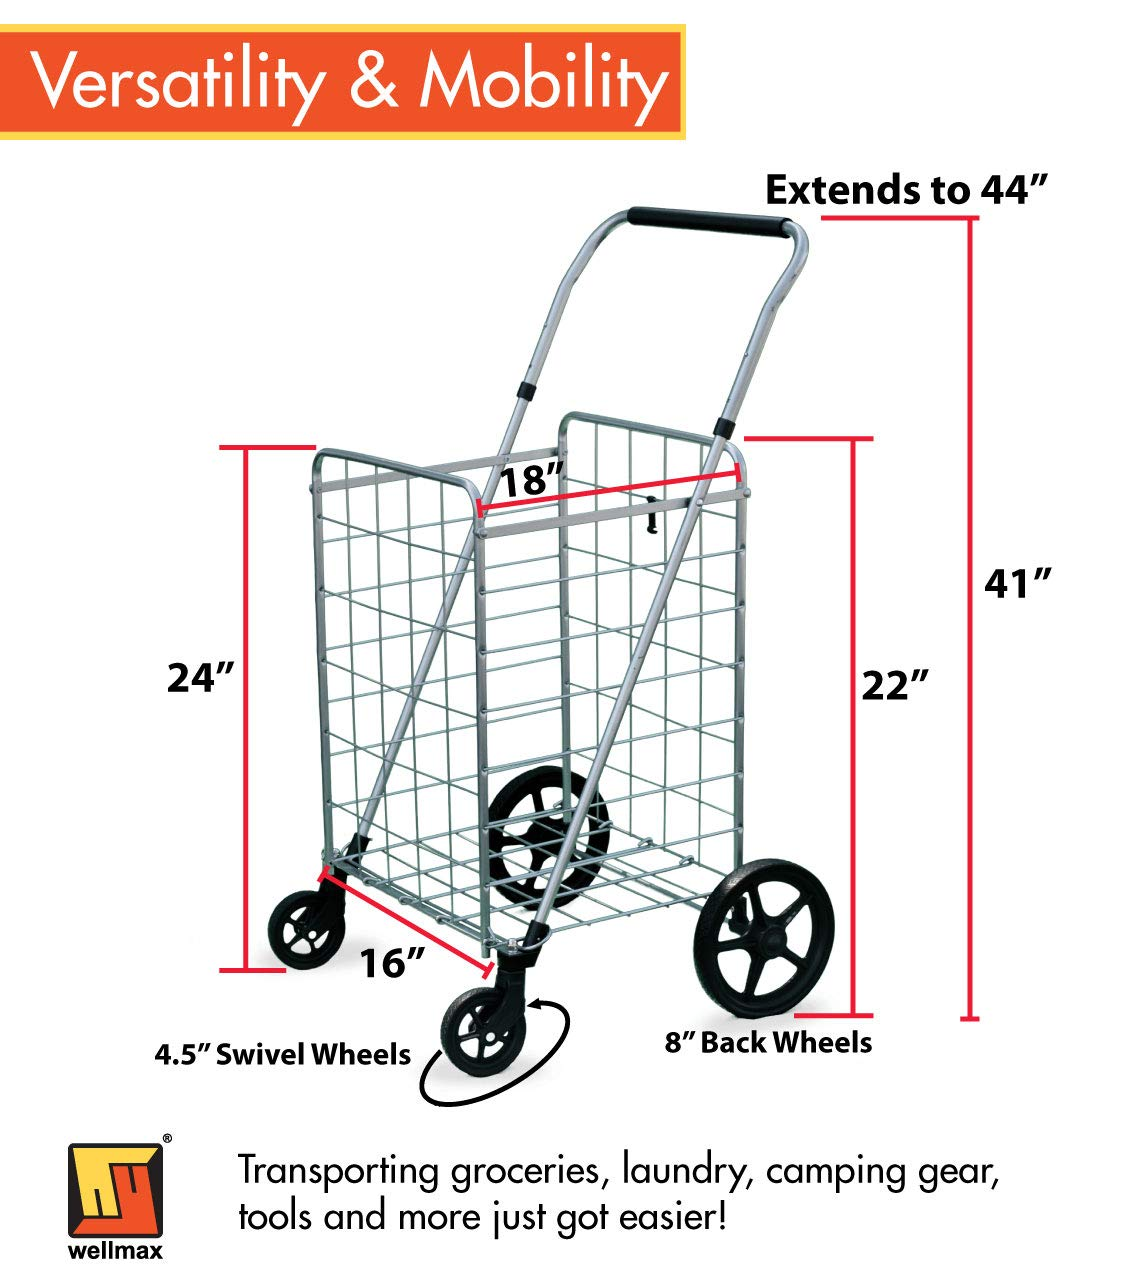 Wellmax Grocery Shopping Cart with Swivel Wheels – Foldable & Collapsible Utility Cart with Adjustable Height Handle – Space Saving Heavy Duty Light Weight Trolley by Wellmax (Image #3)